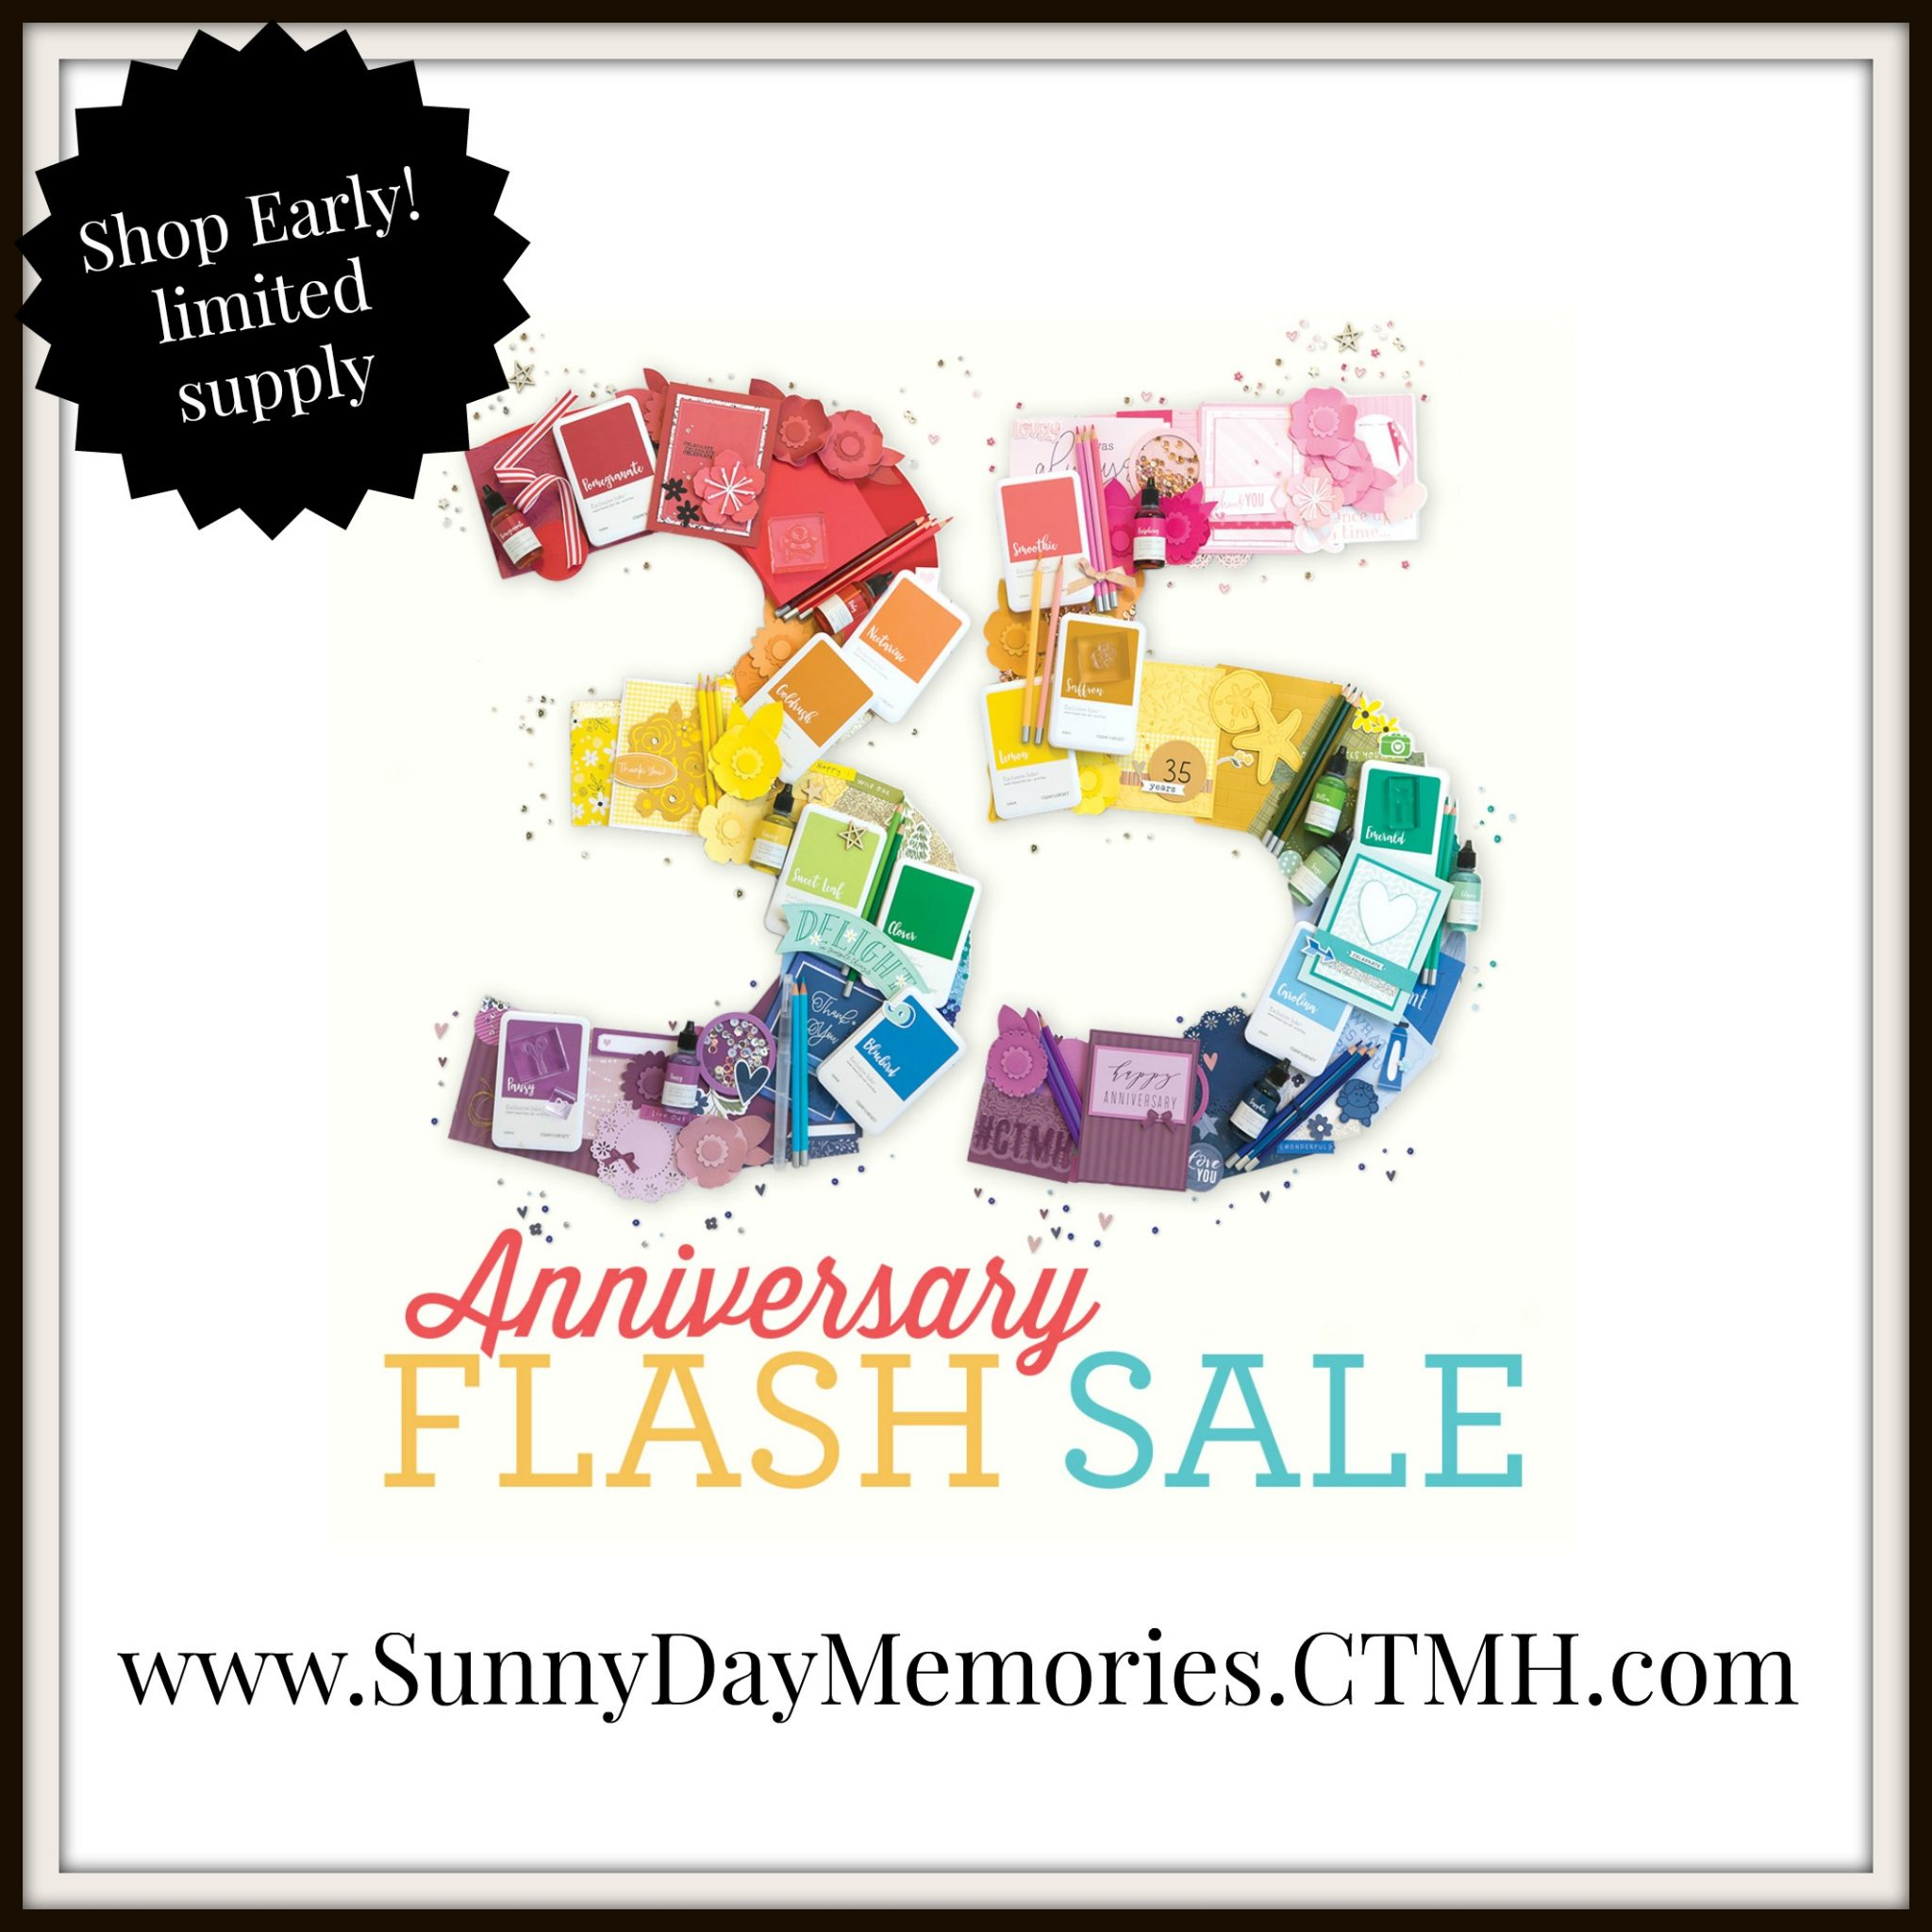 CTMH 35th Anniversary Flash Sale